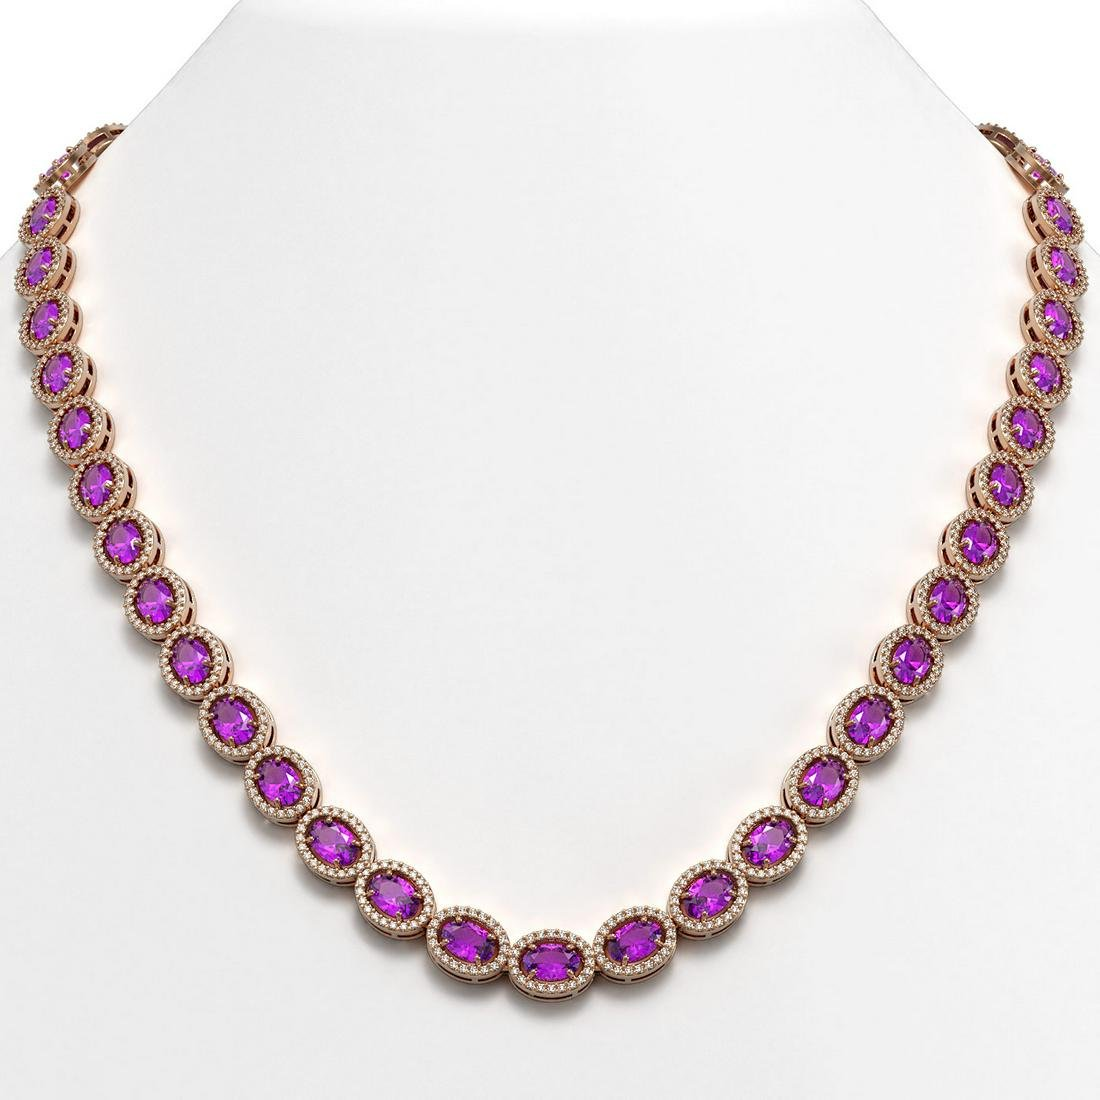 29.38 ctw Amethyst & Diamond Micro Pave Halo Necklace